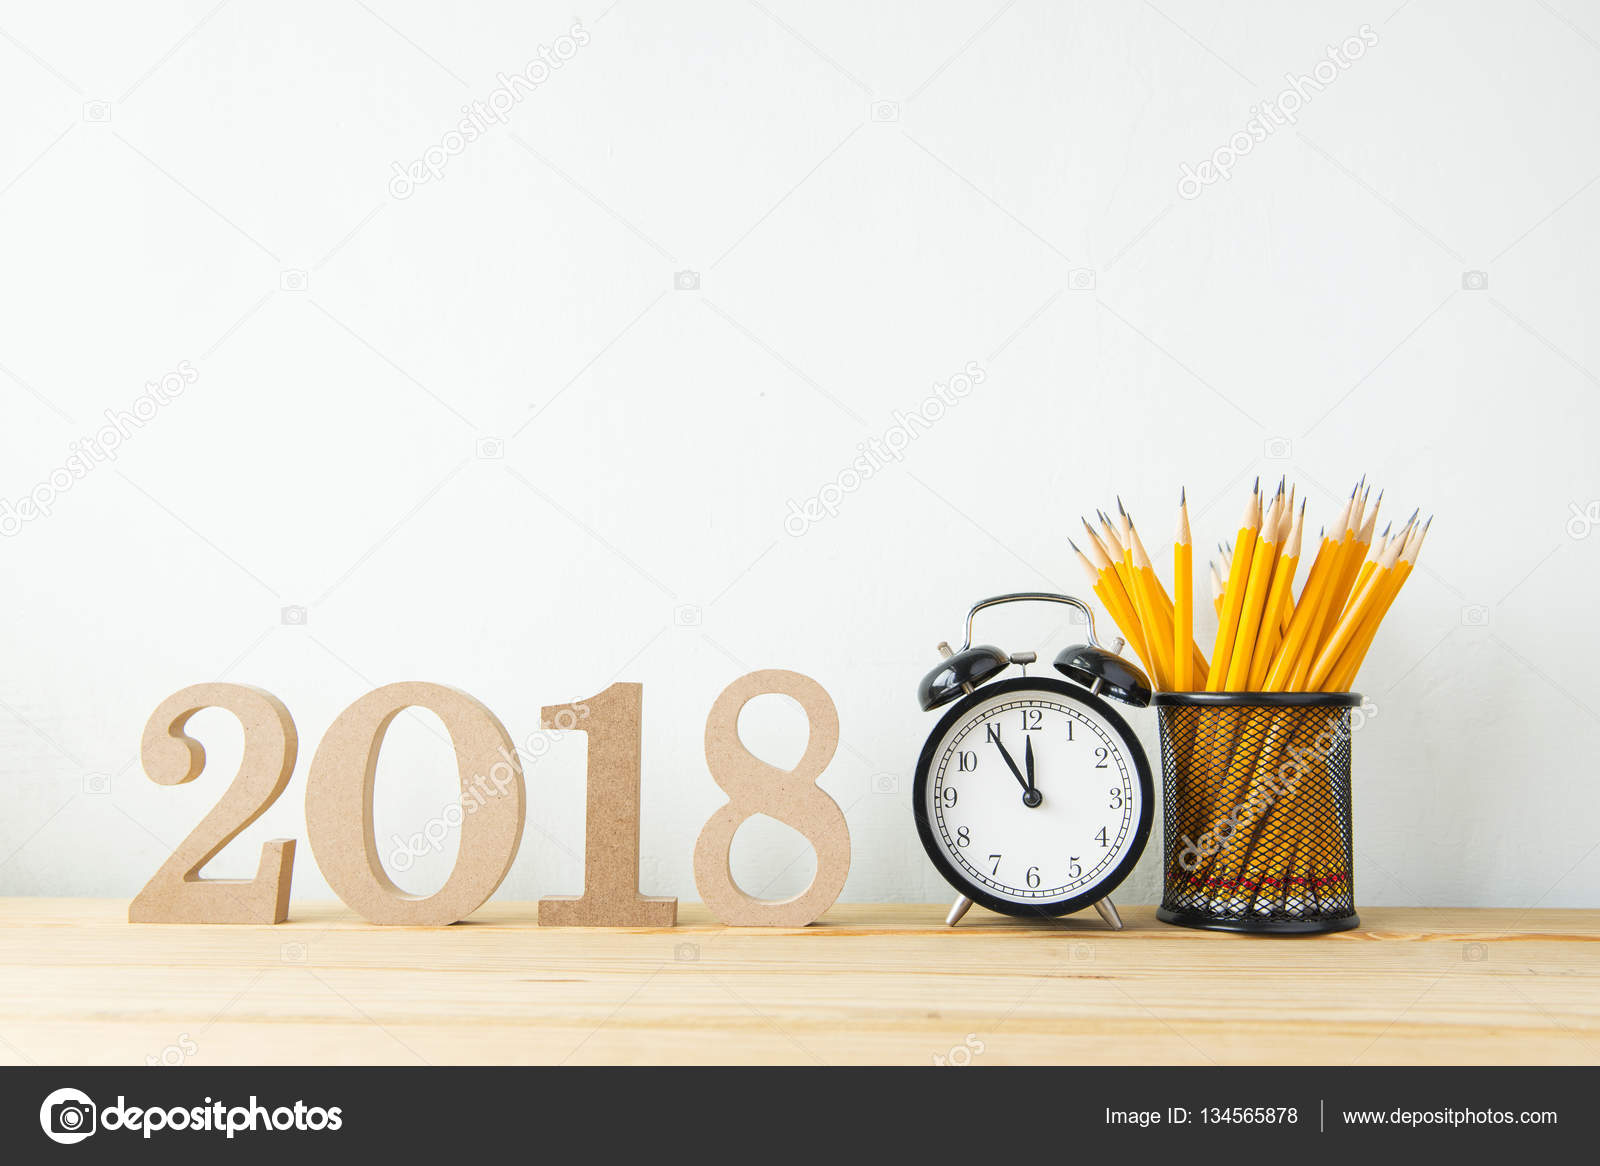 2018 happy new year background